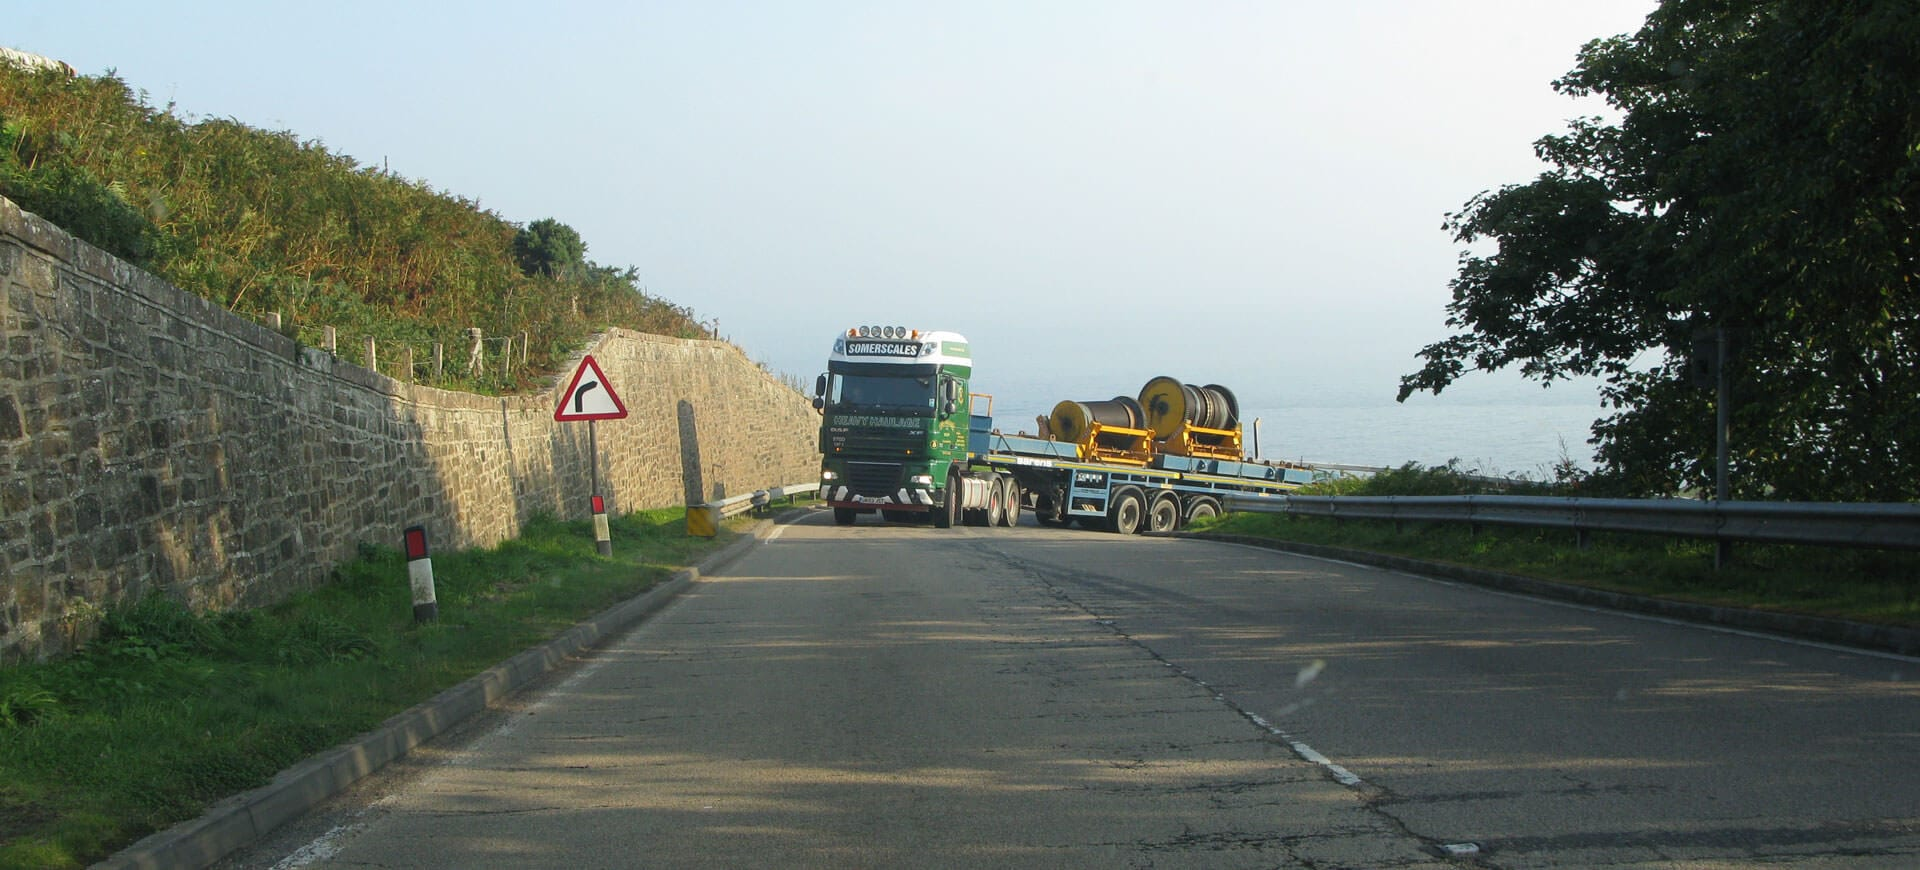 North Coast 500 Lorries on the route